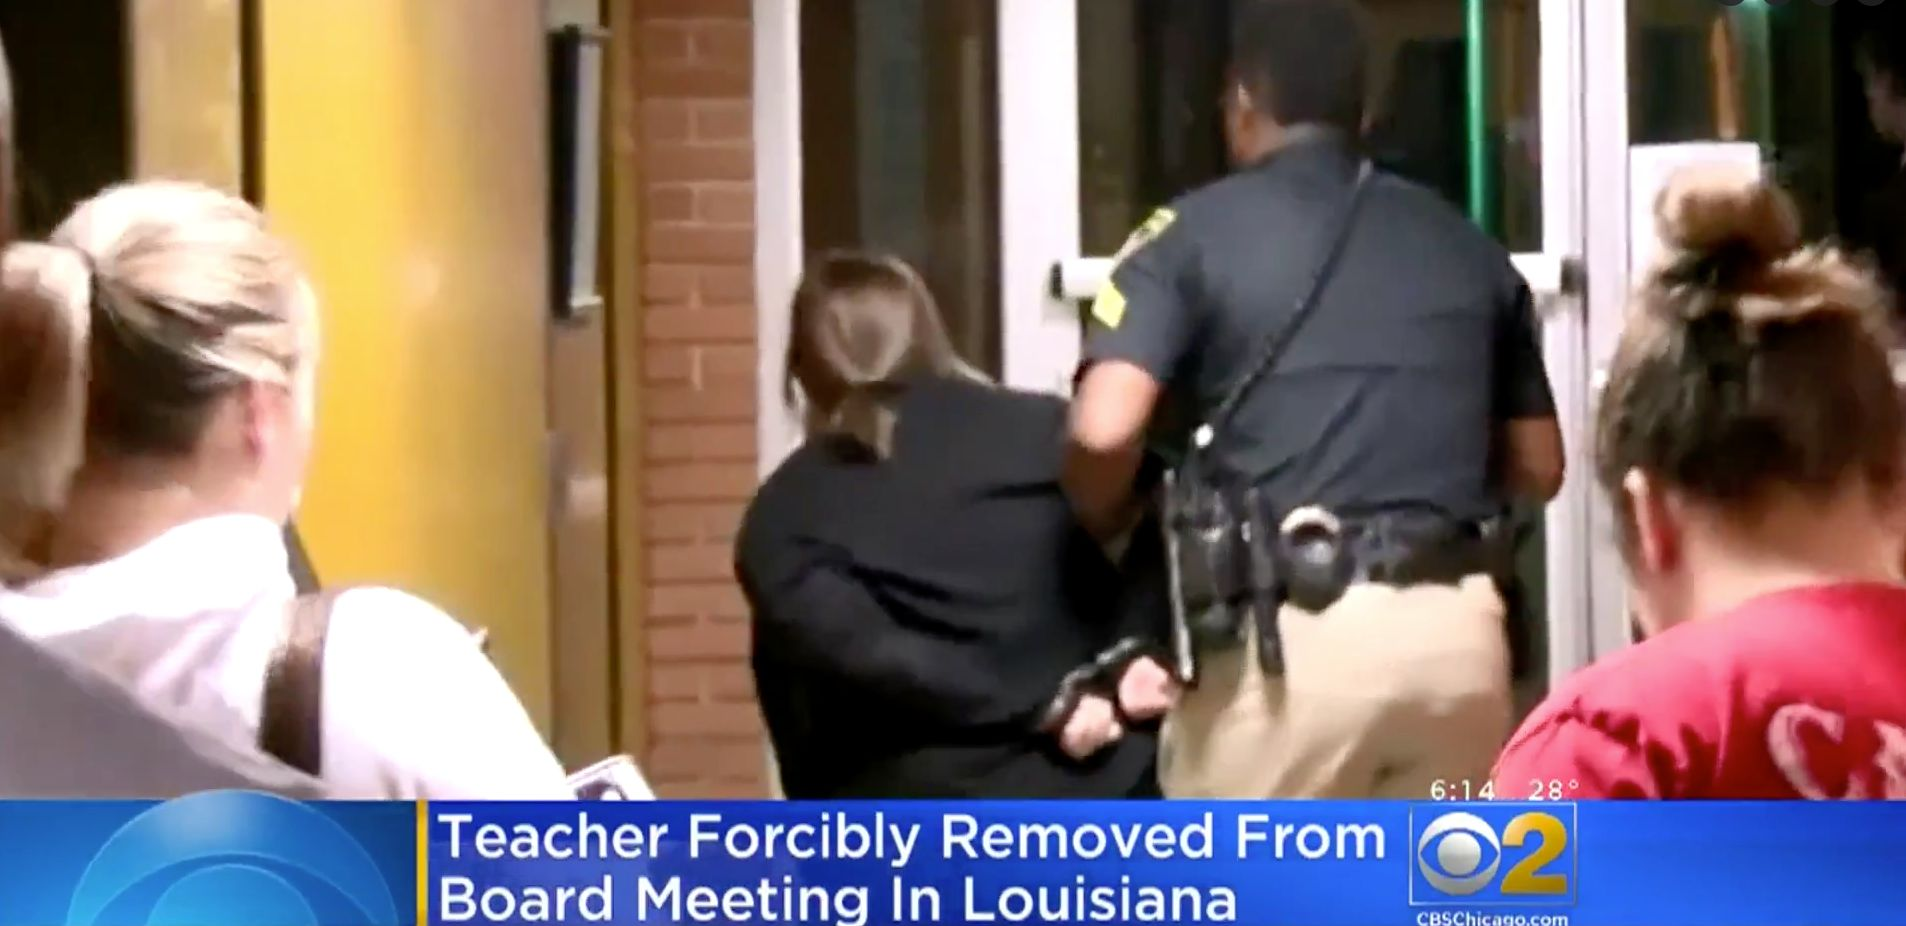 Teacher Deyshia Hargrave is seen being removed from the building in handcuffs after questioning a superintendent's pay raise